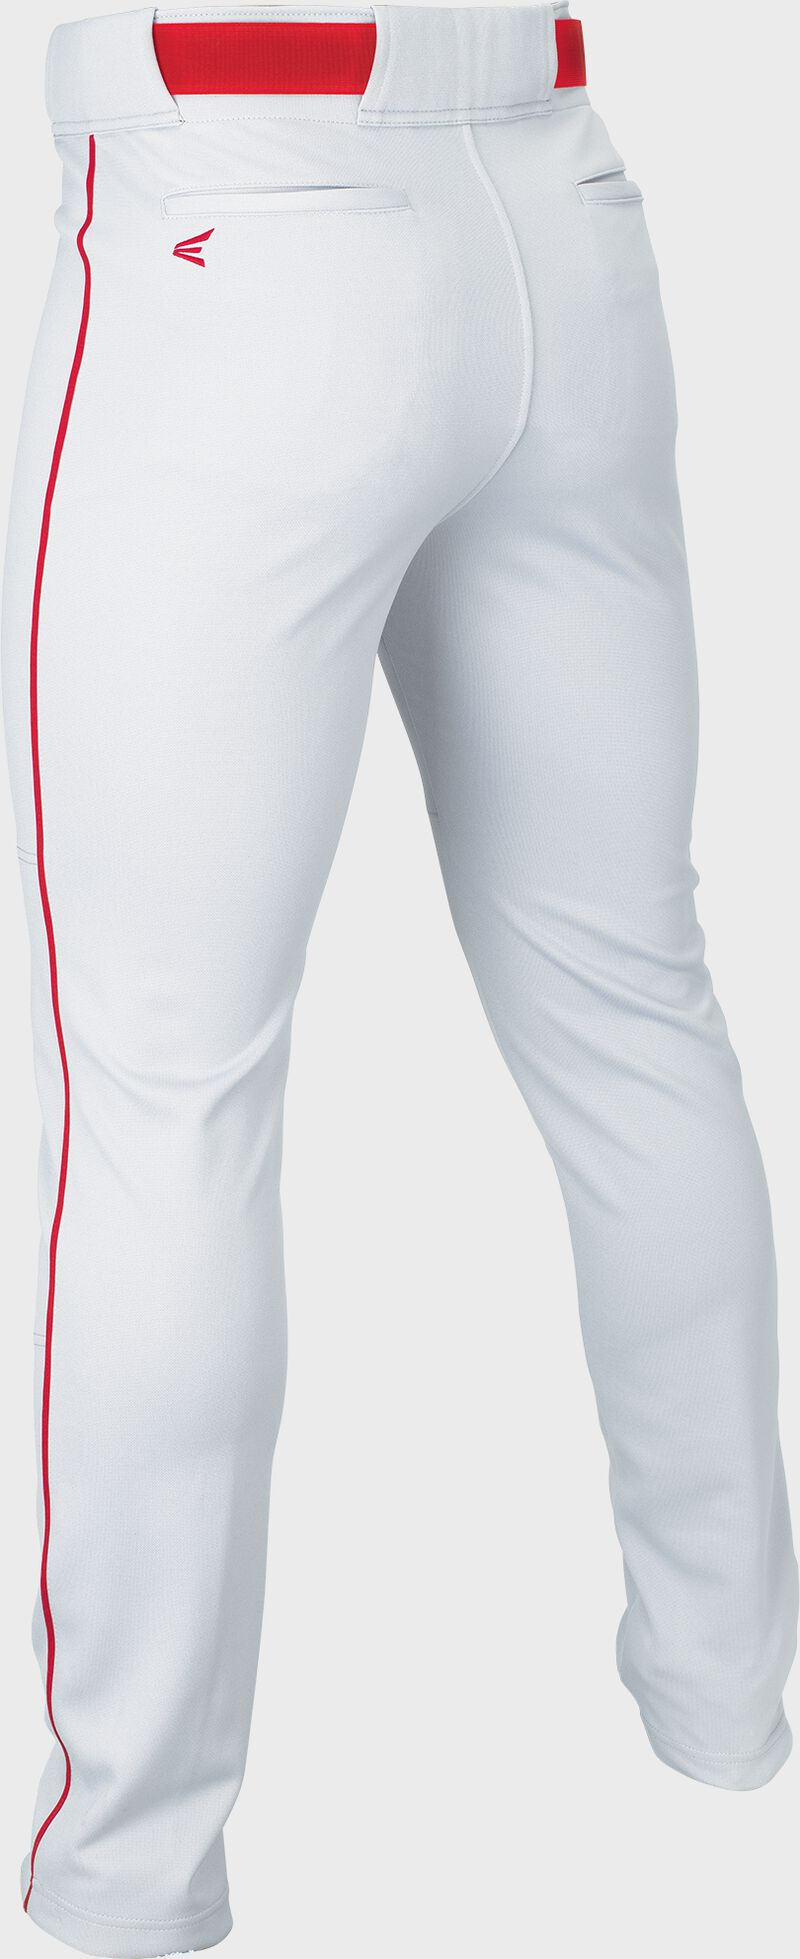 RIVAL+ PANT ADULT PIPED WHITE/RED M